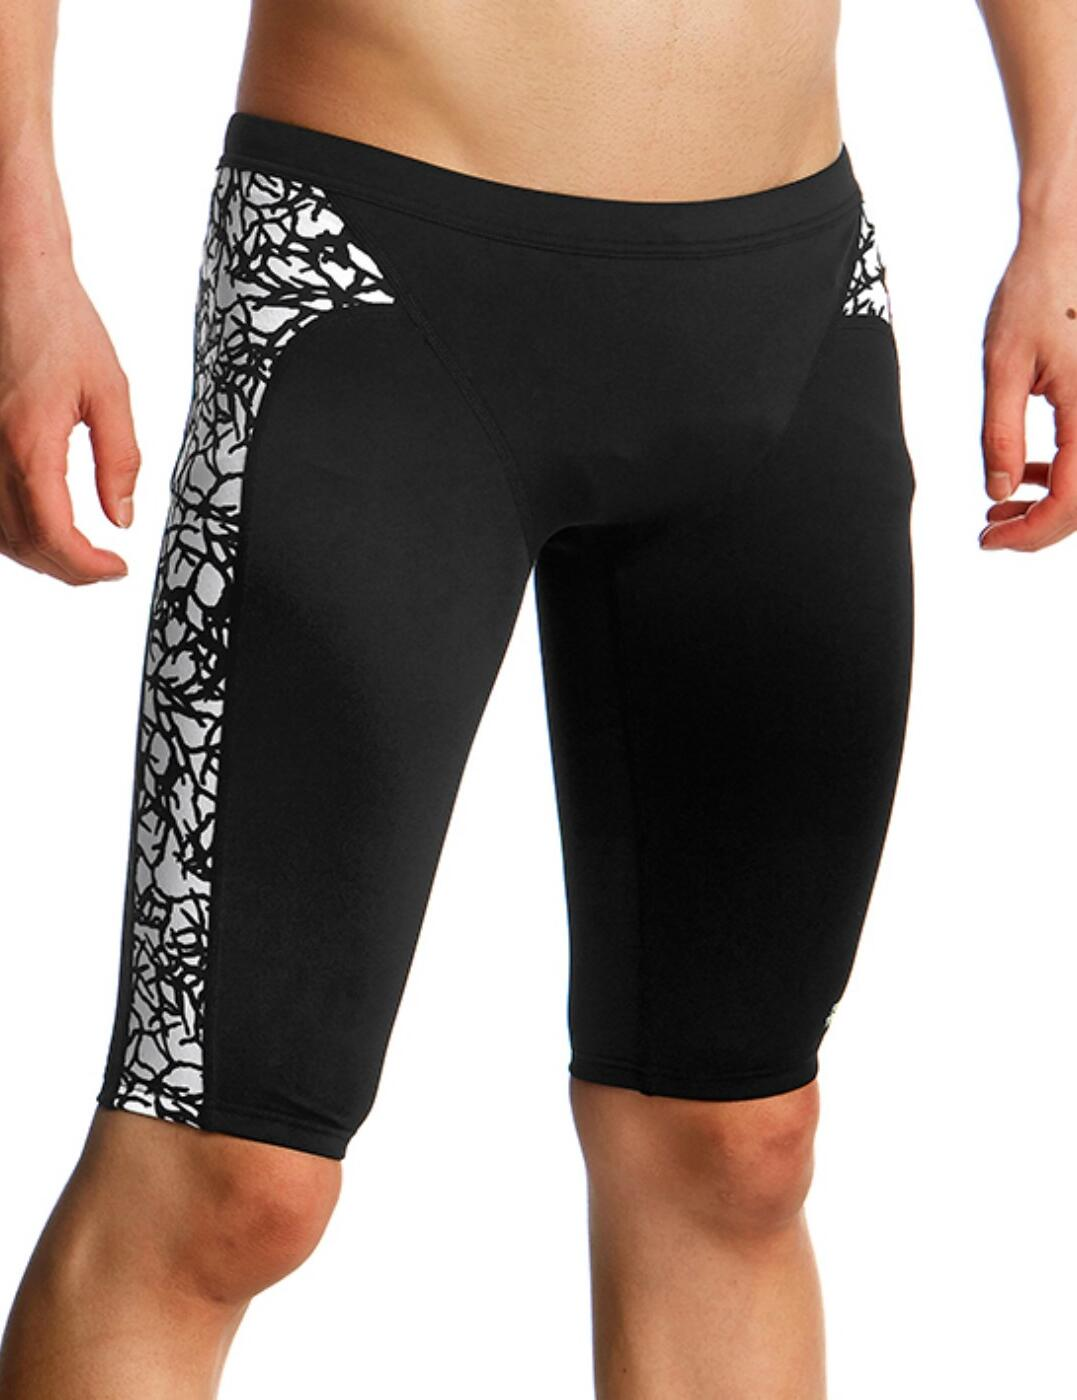 FT37B Funky Trunks Boys Training Jammers - FT37B01966 Bleached Coral